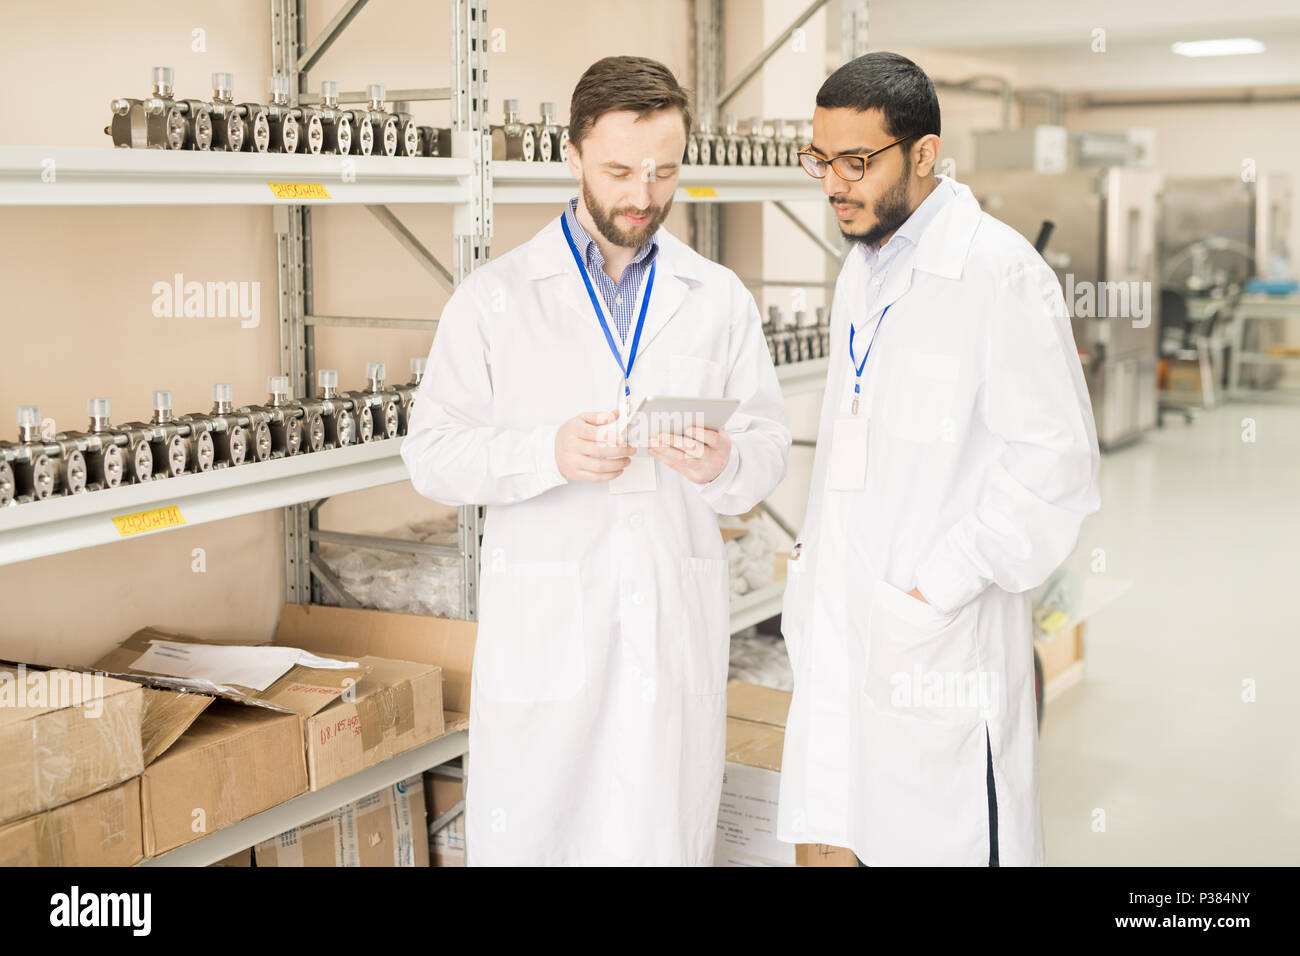 Teamwork at Warehouse of Measuring Equipment Factory - Stock Image